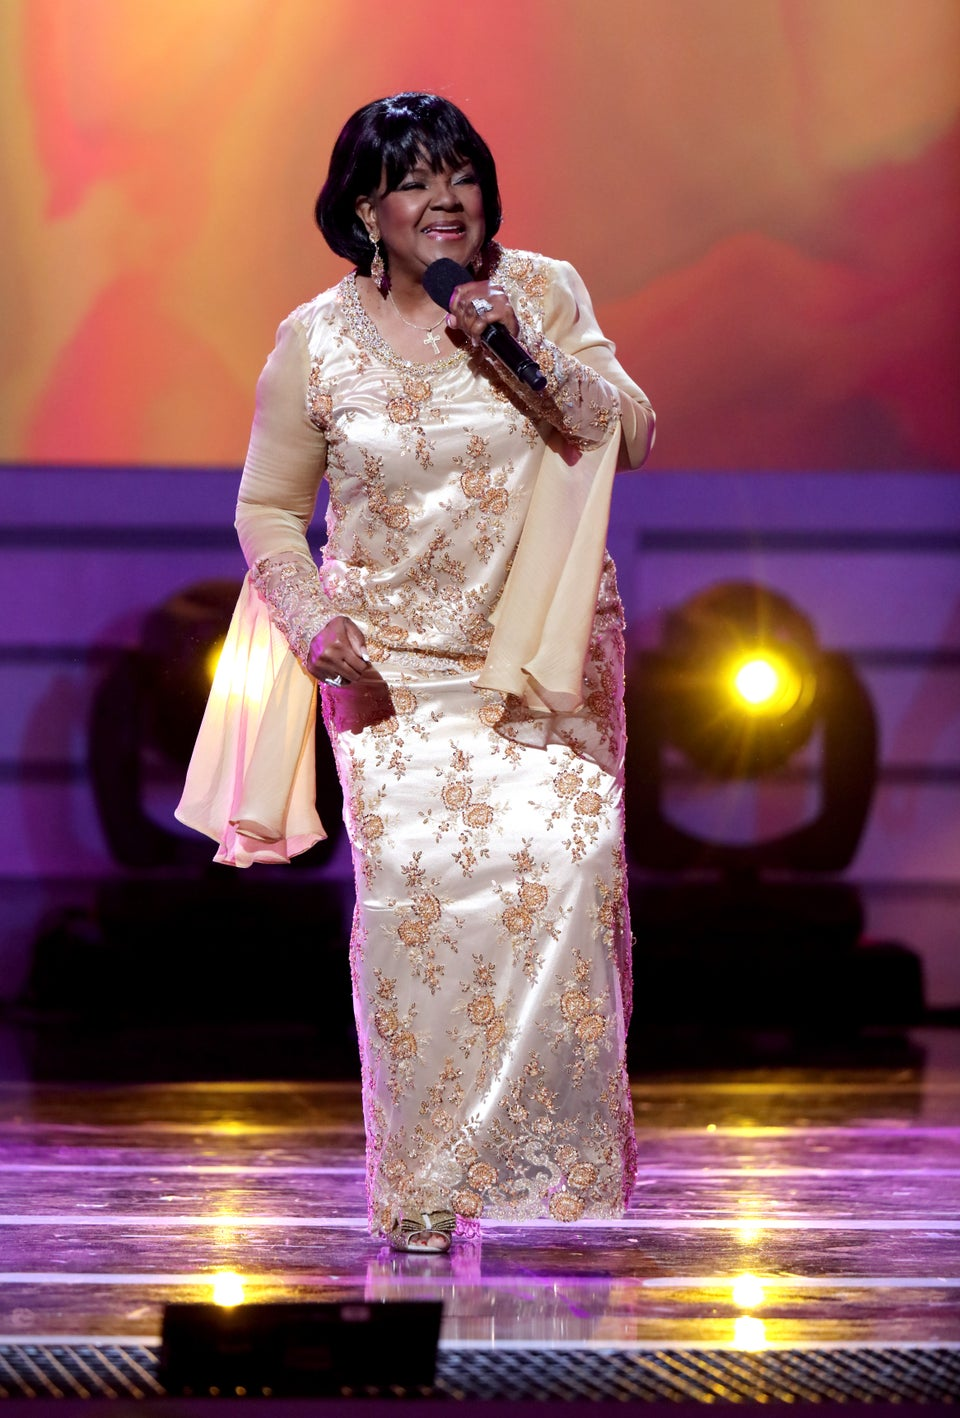 Shirley Caesar Needs Y'all To Chill With The Gyrating